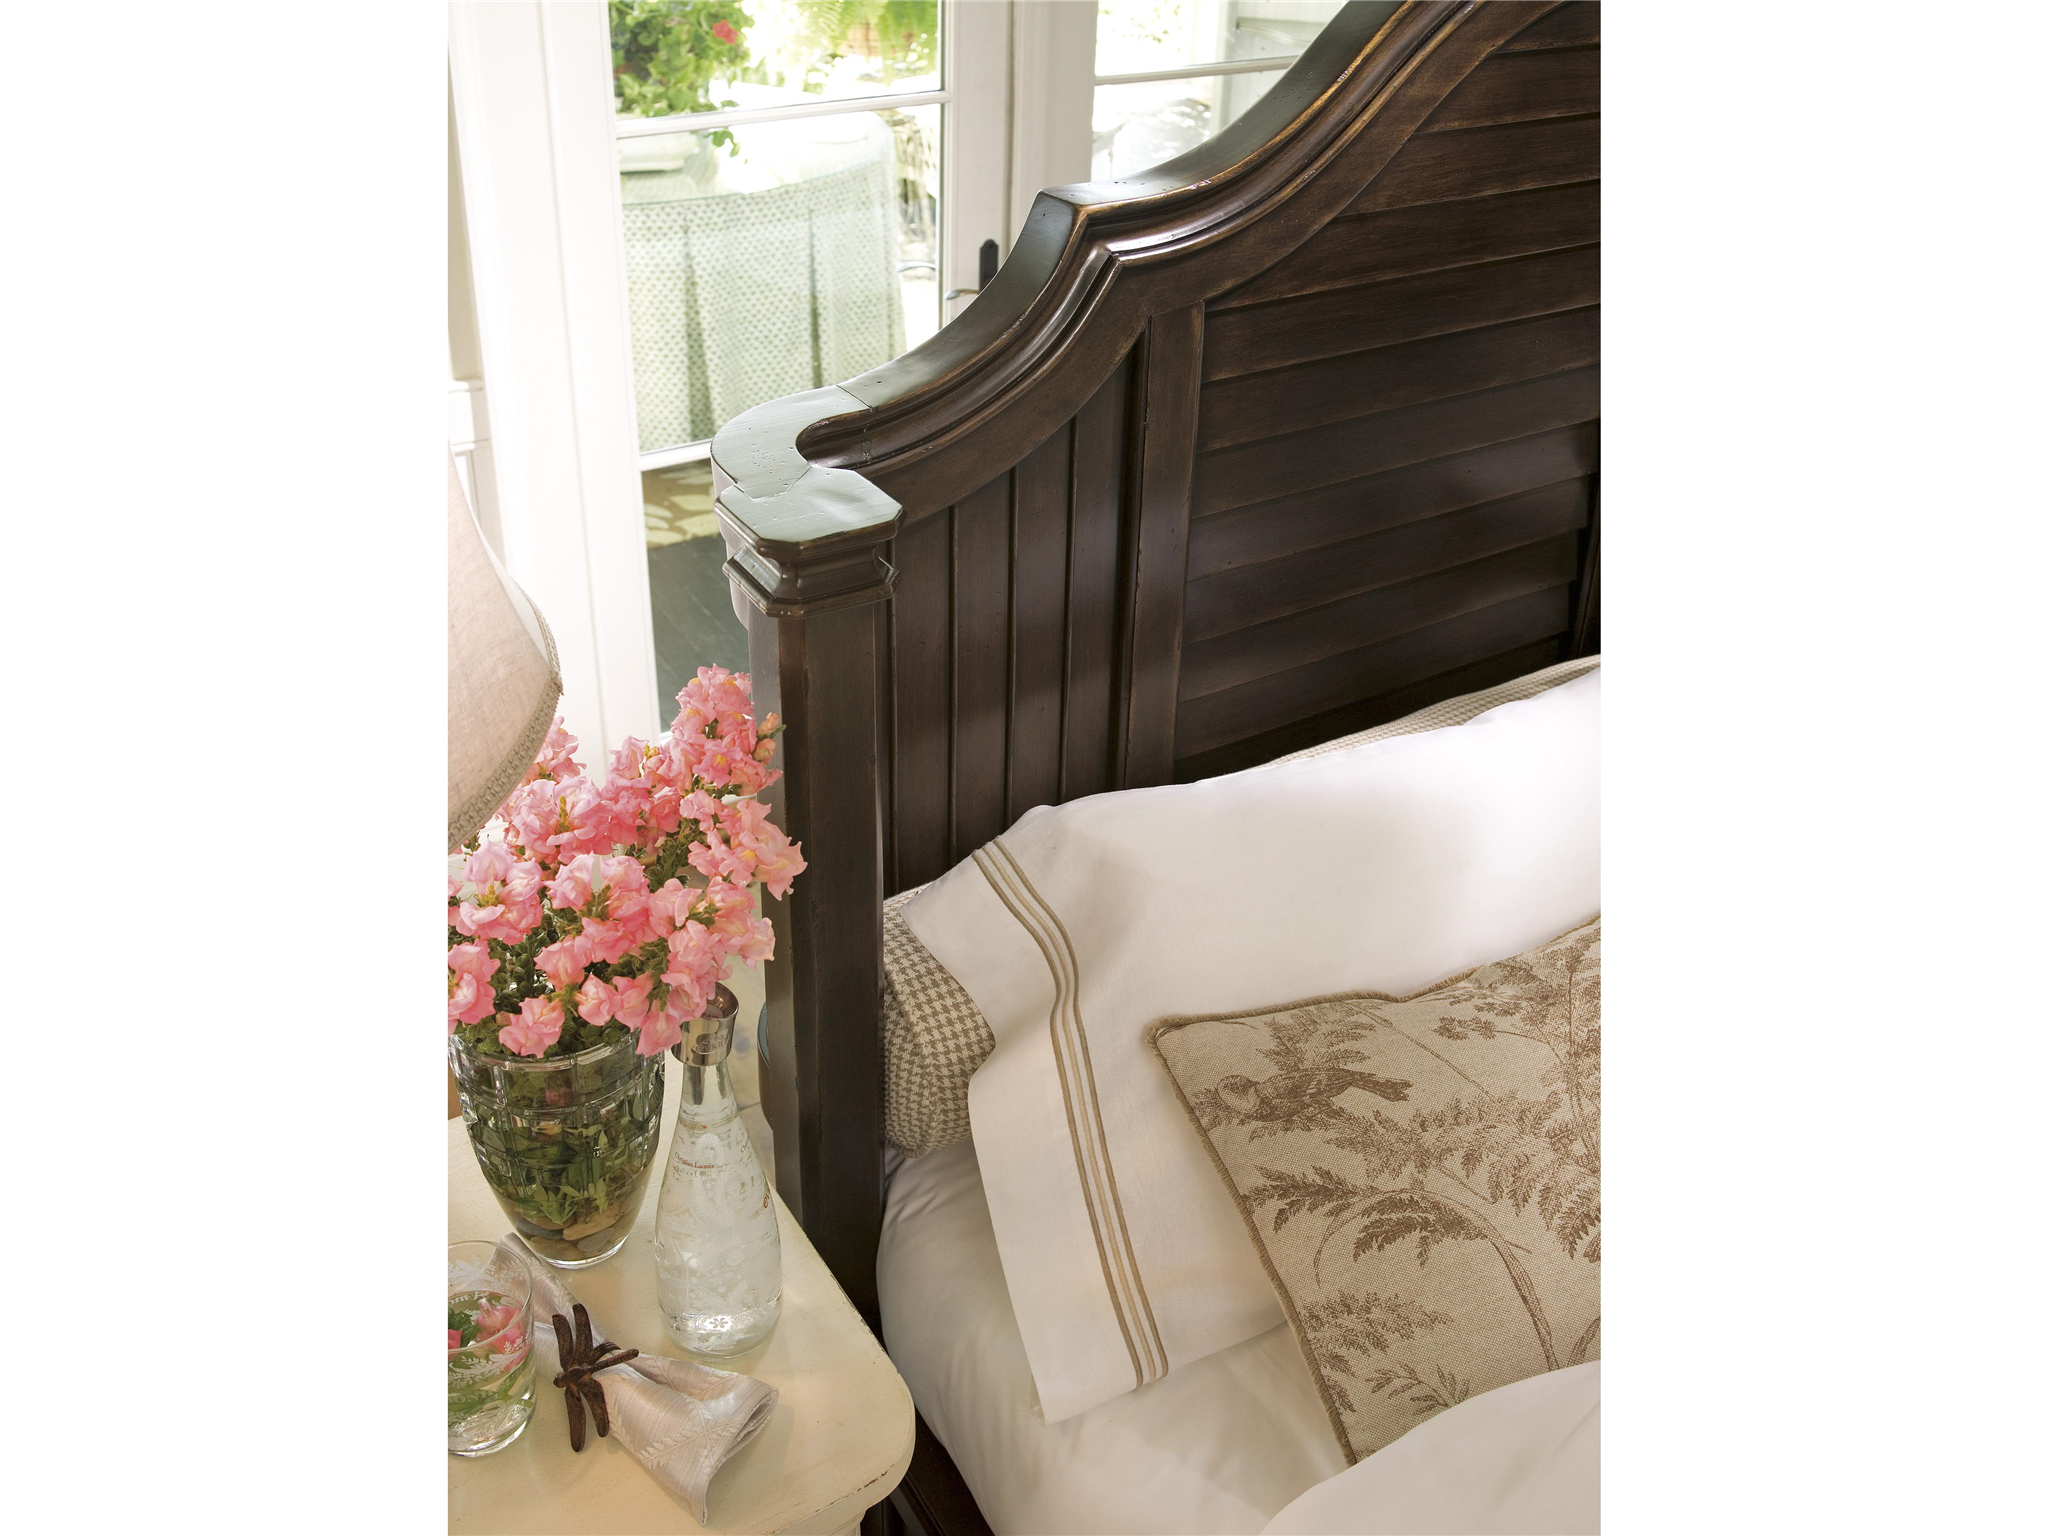 Universal Furniture Paula Deen Home Steel Magnolia Bed  : 932BRRS15220Detailuvm001 from www.pauladeenhome.com size 2048 x 1536 jpeg 1179kB